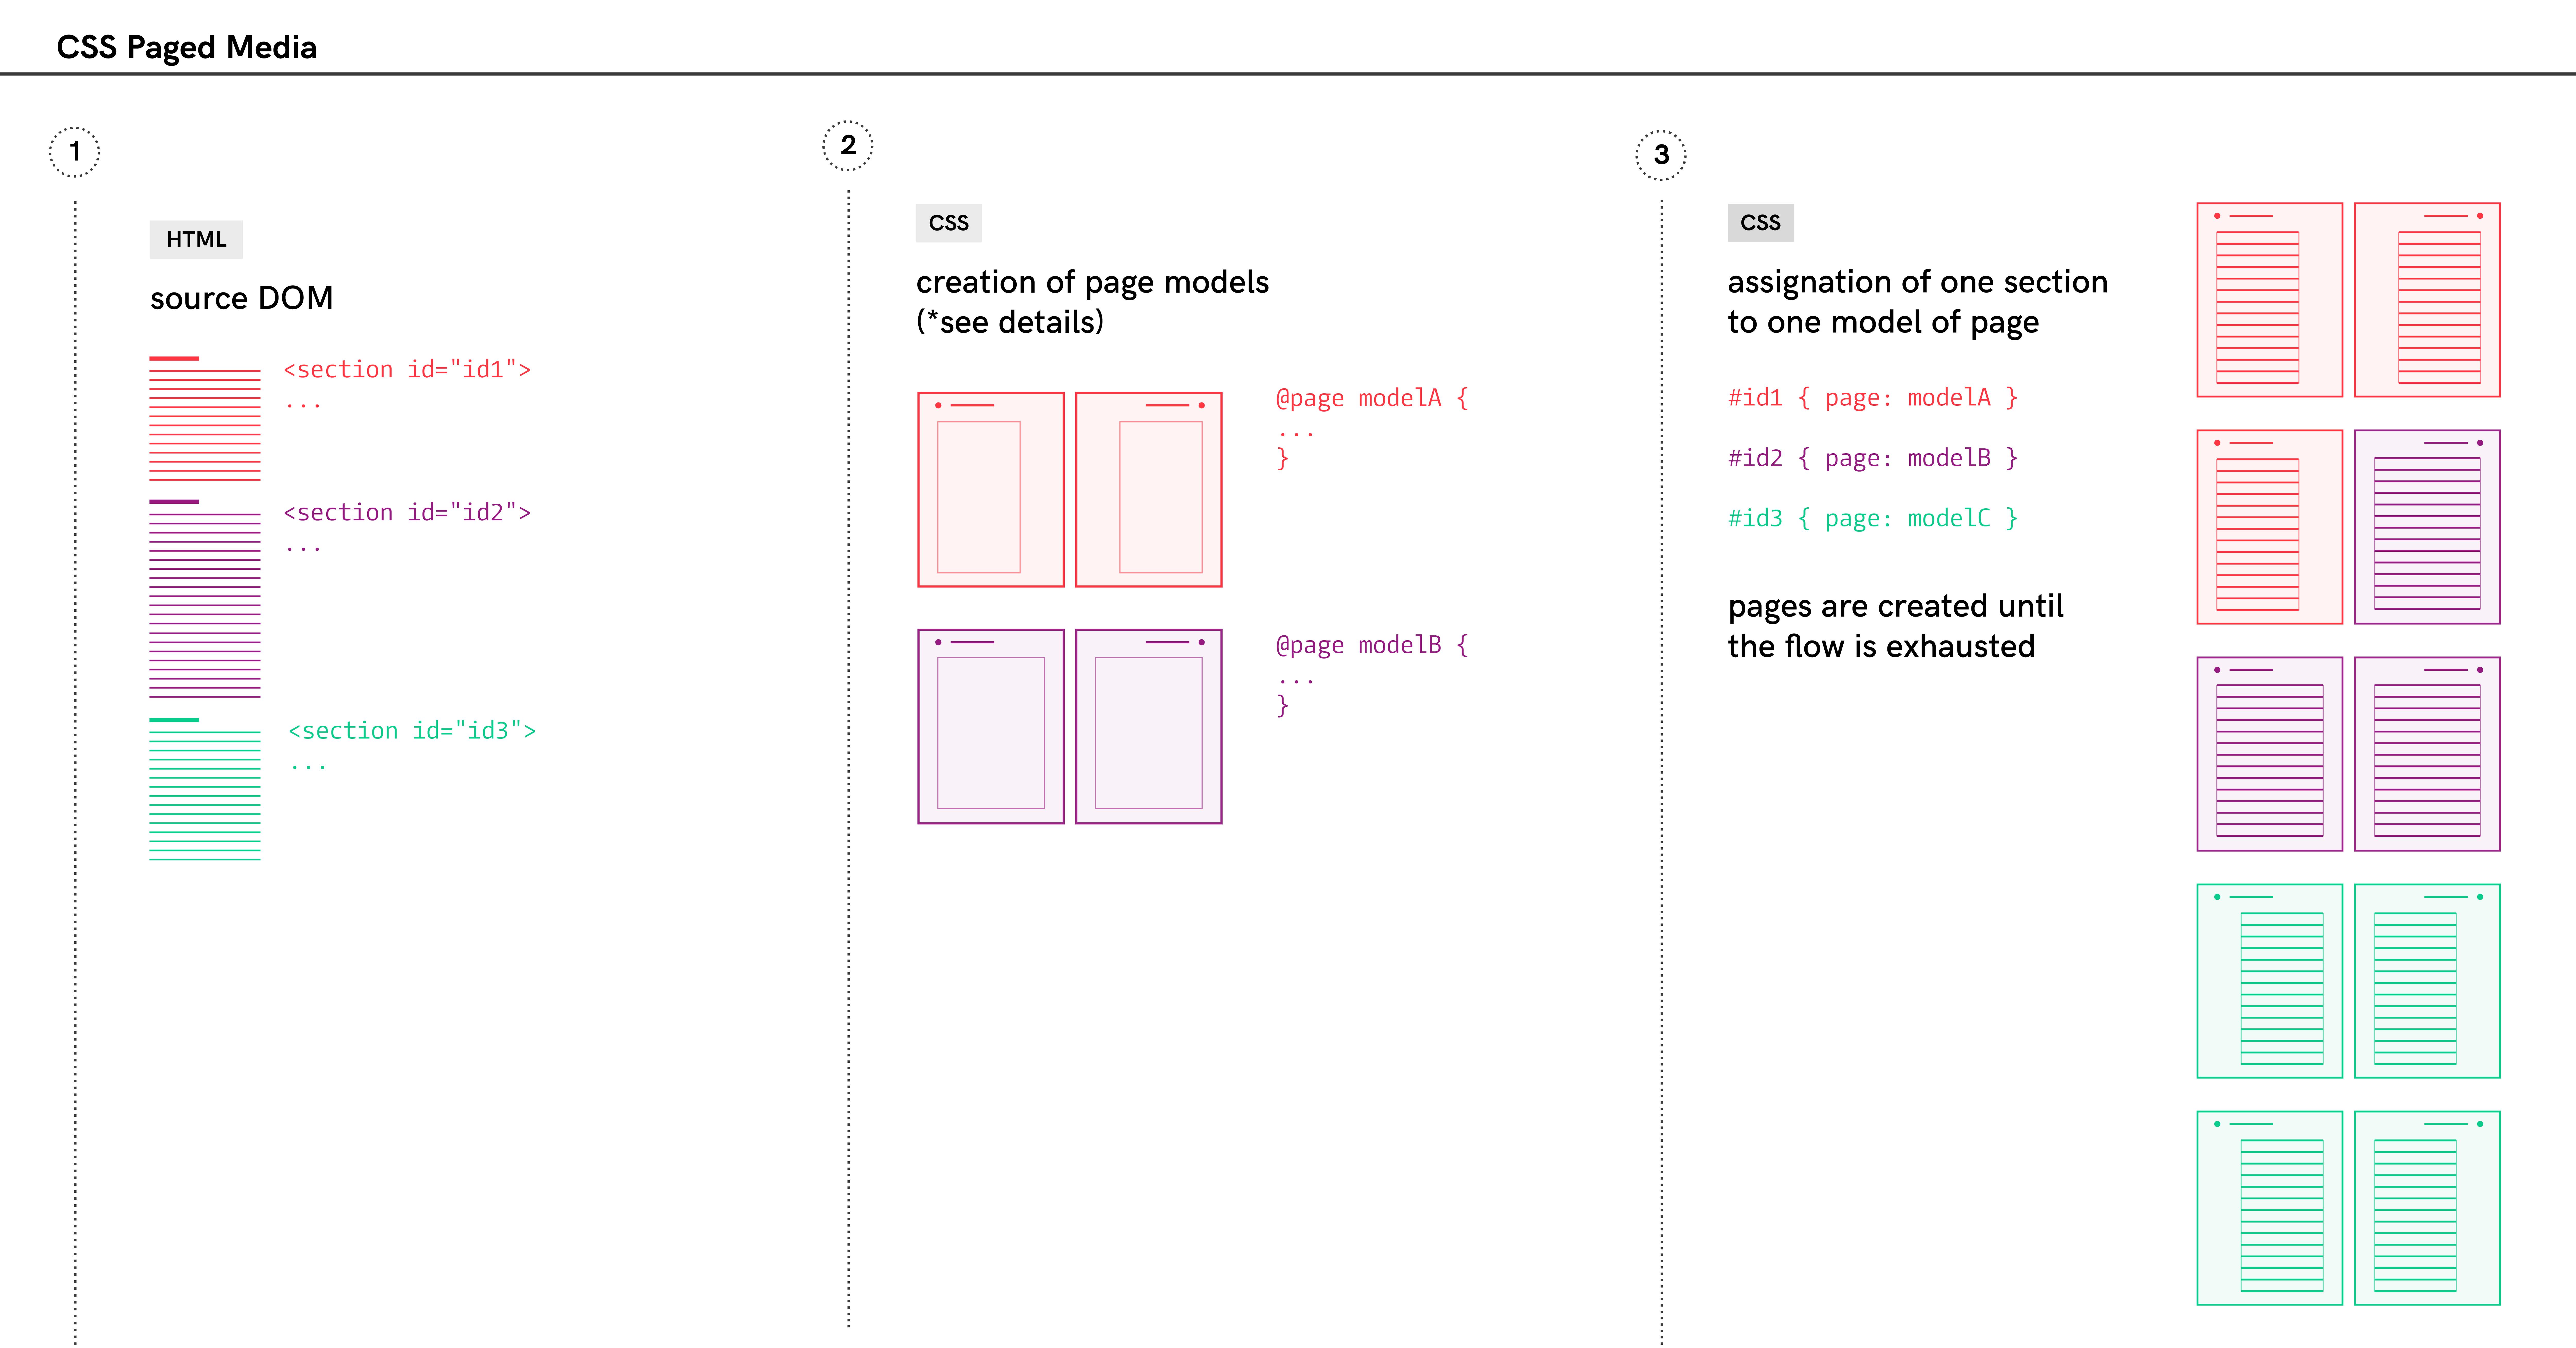 Sketch about CSS Paged Media specifications